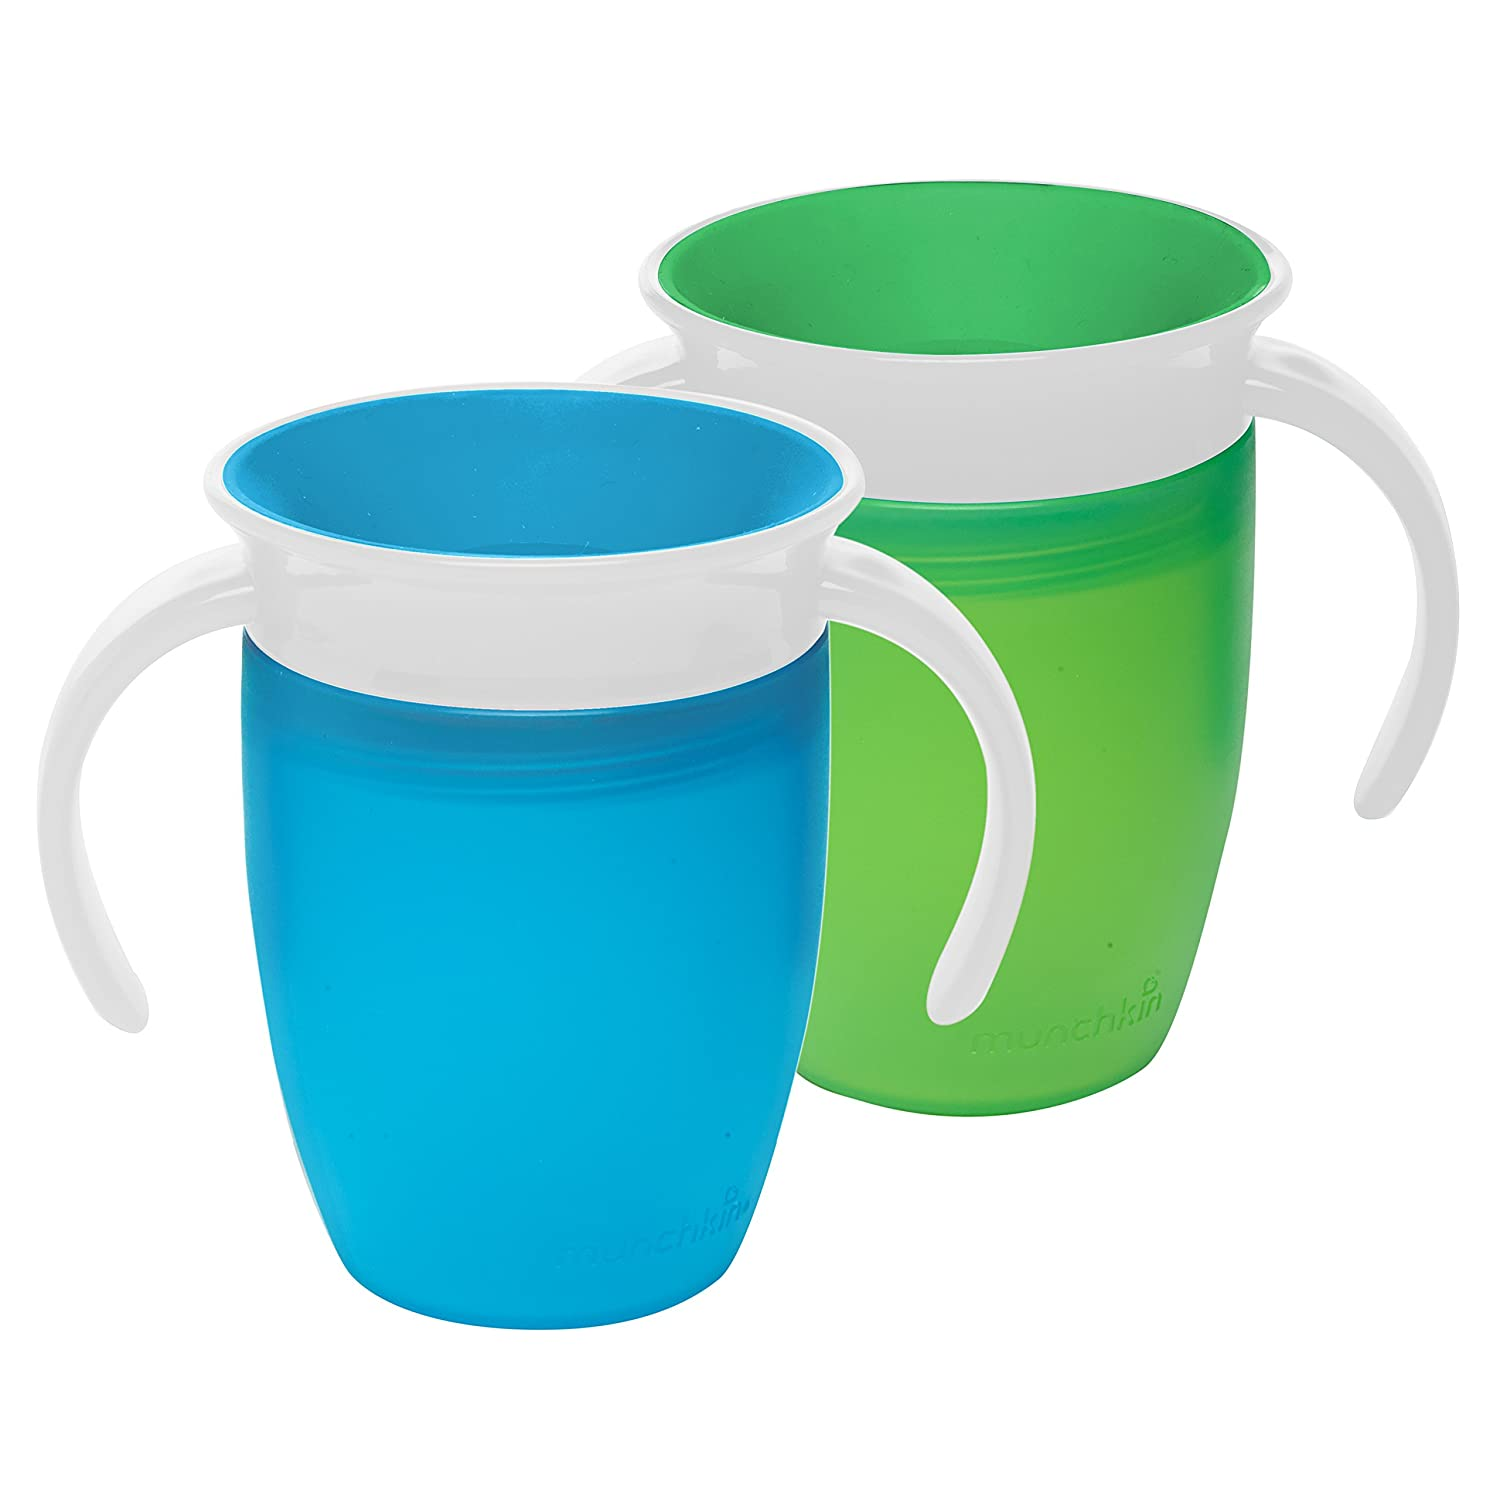 Toddler Sippy Cup Set 2 Pack Blue Green Training No Spill